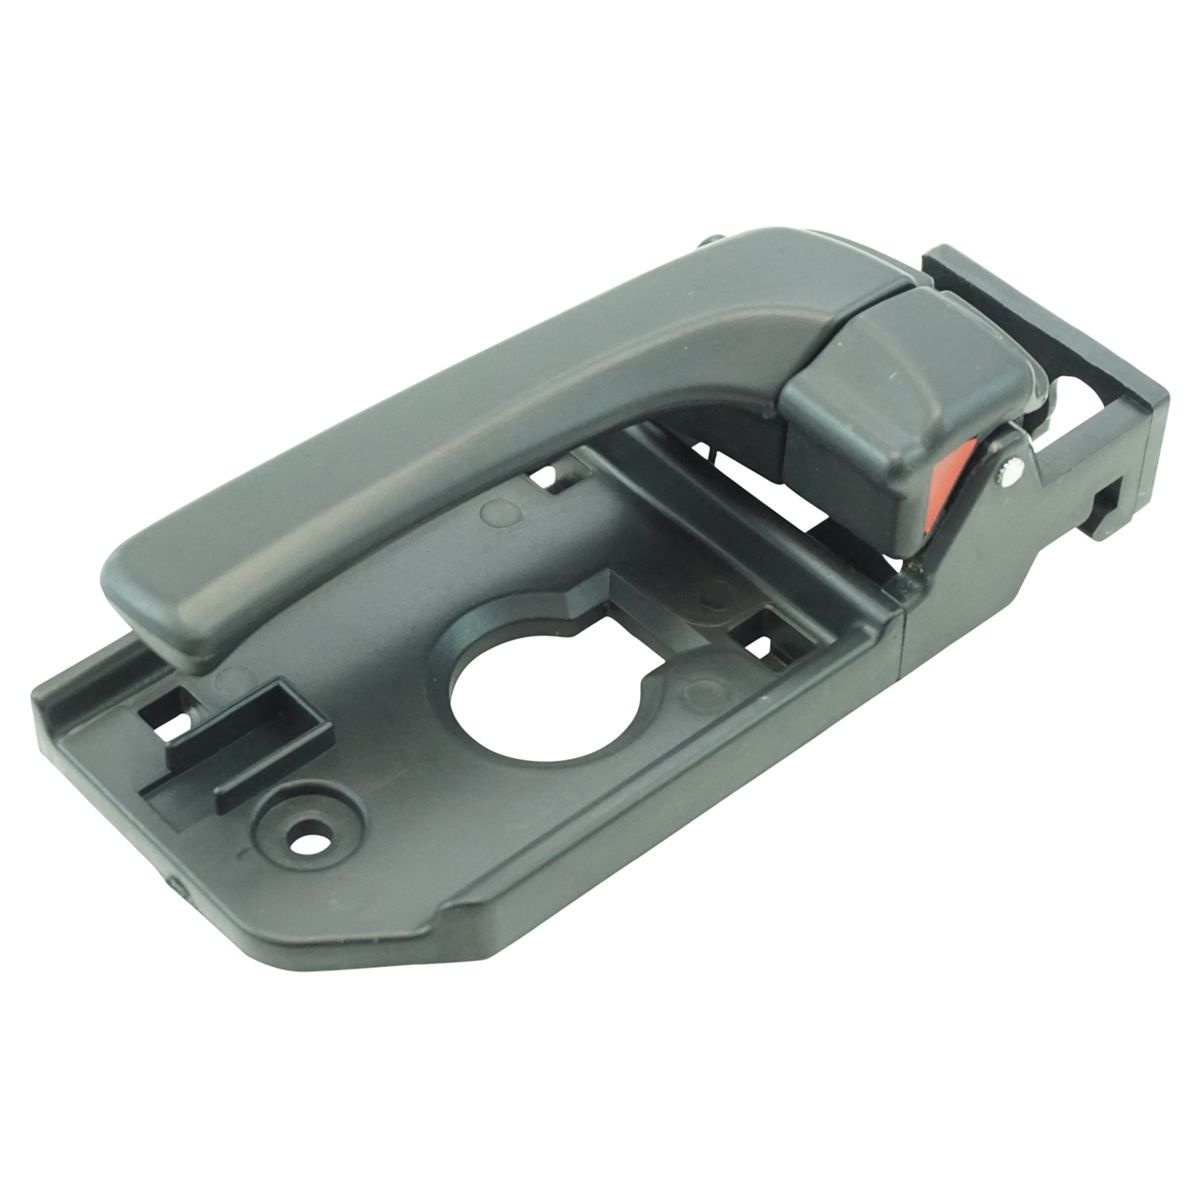 AM For Hyundai,Kia Entourage,Sedona Front,Left Driver Side DOOR OUTER HANDLE